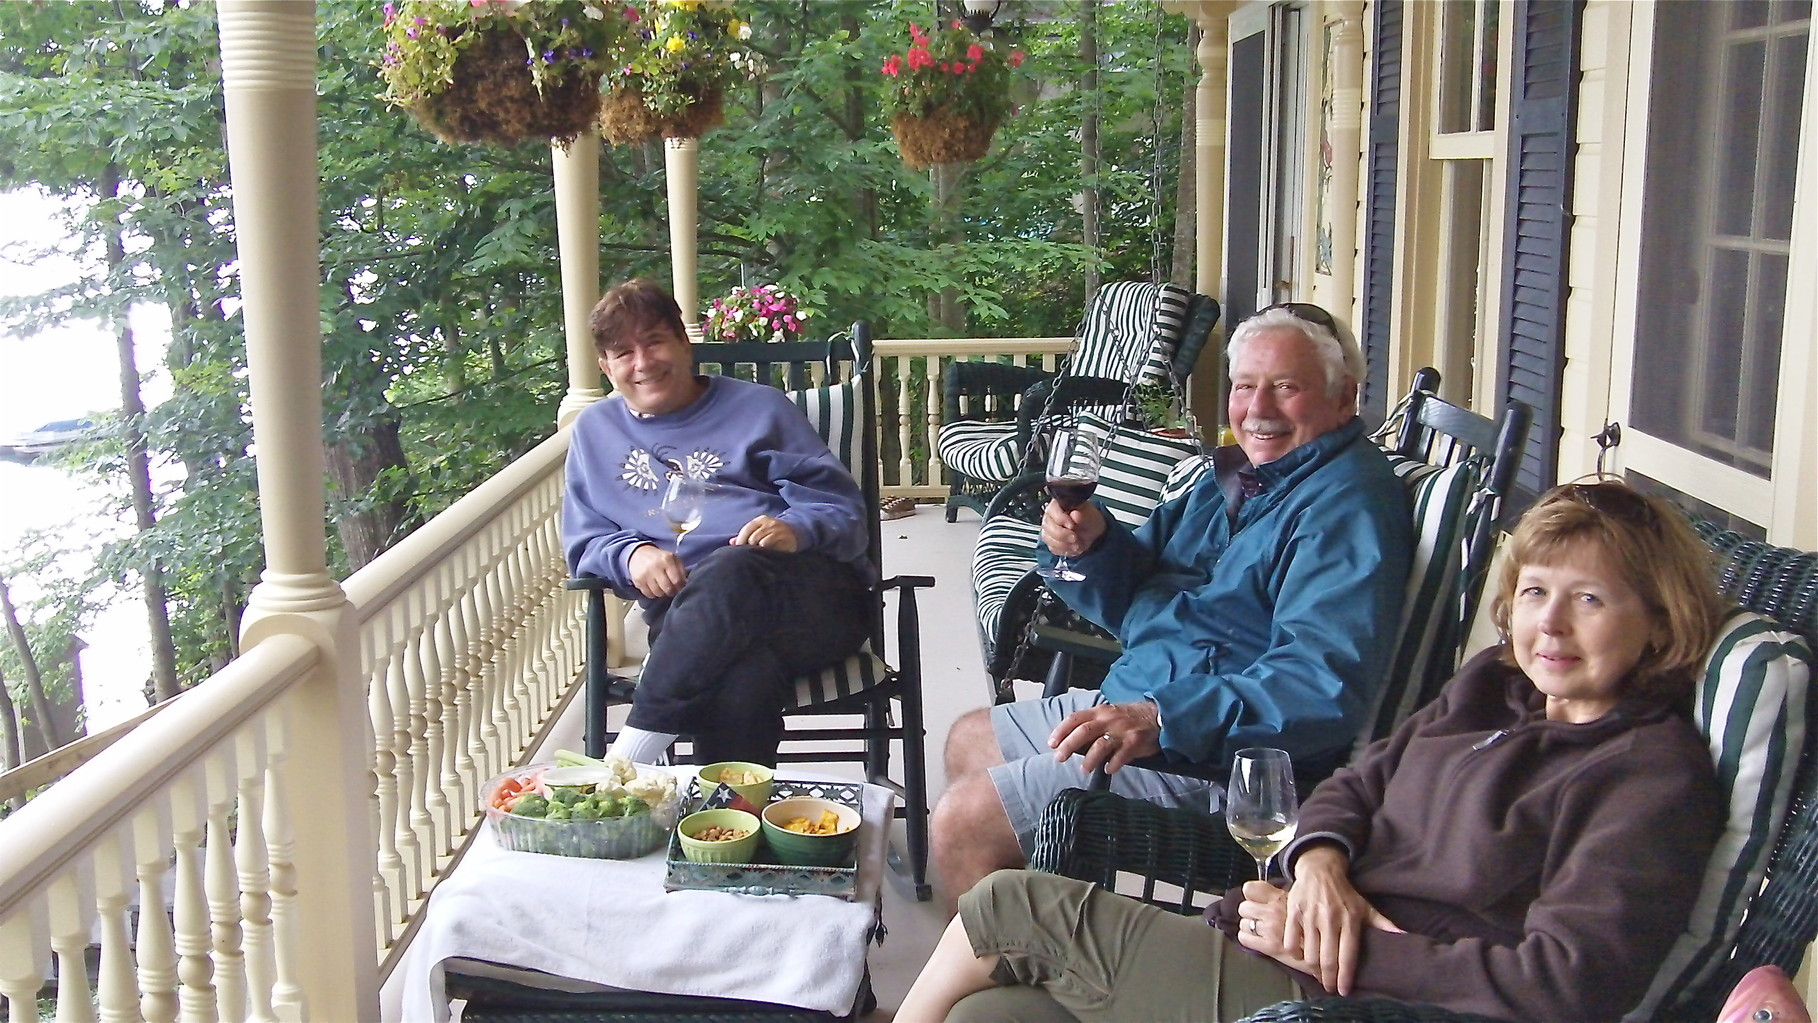 John, Don, & Barbara, on porch of Celeste's lake house, Skaneateles, NY